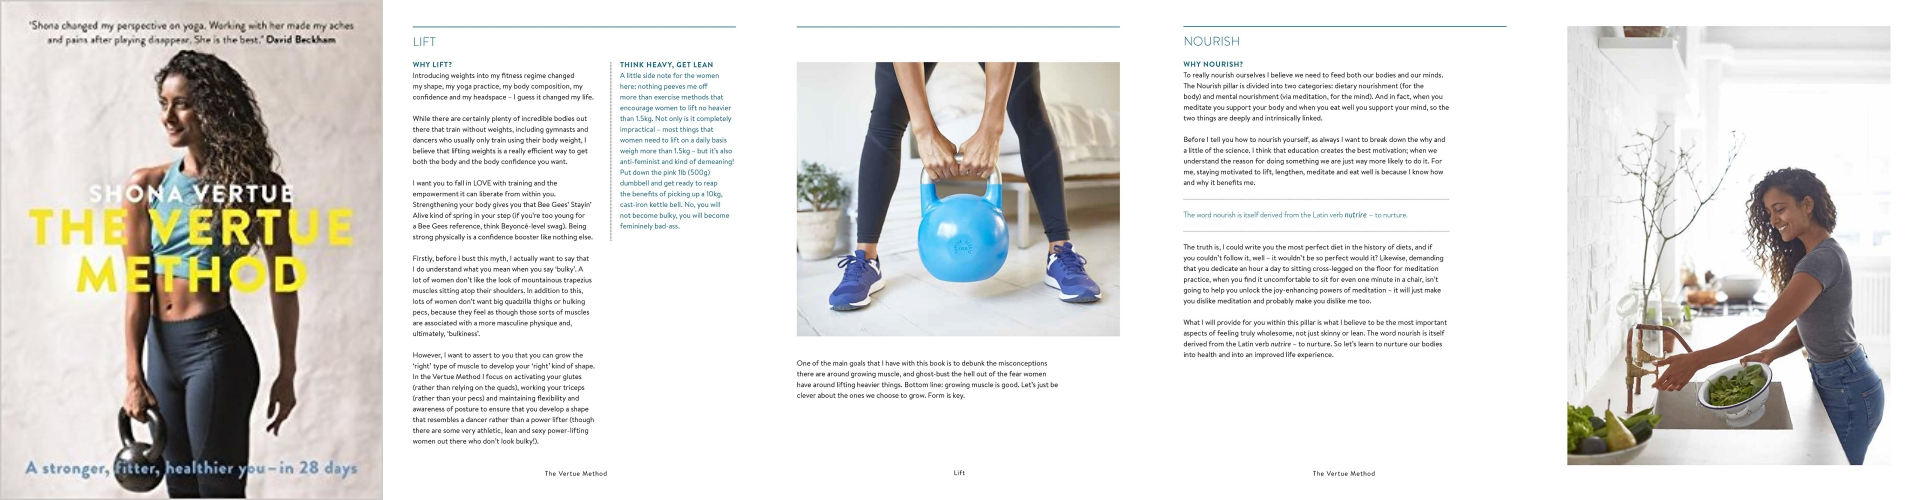 The Vertue Method is available to buy NOW